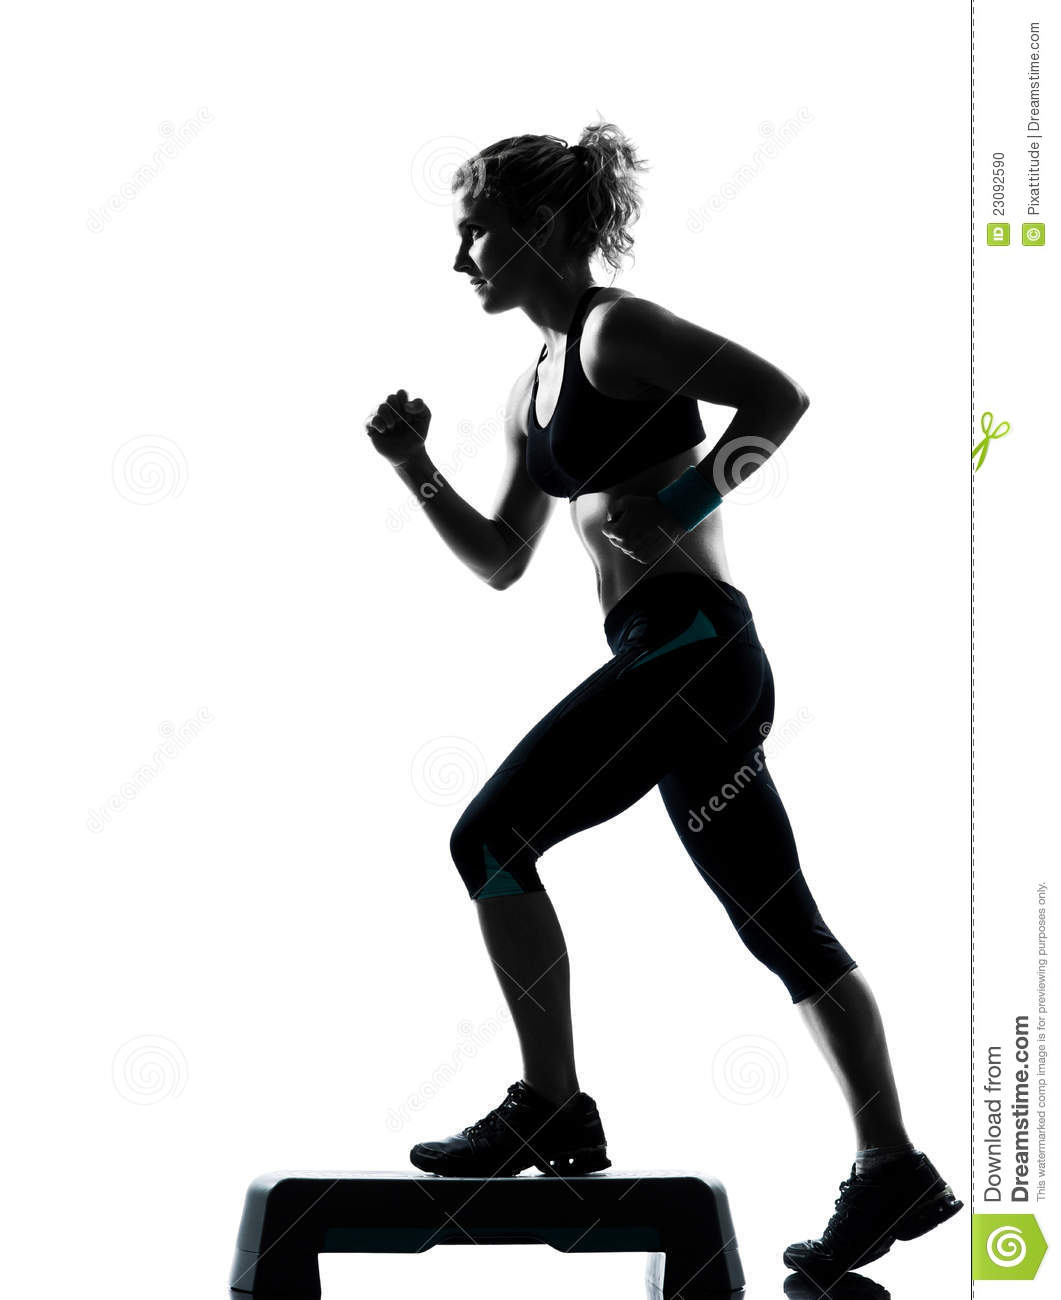 Woman Exercising Step Aerobics Stock Photo - Image: 23092590